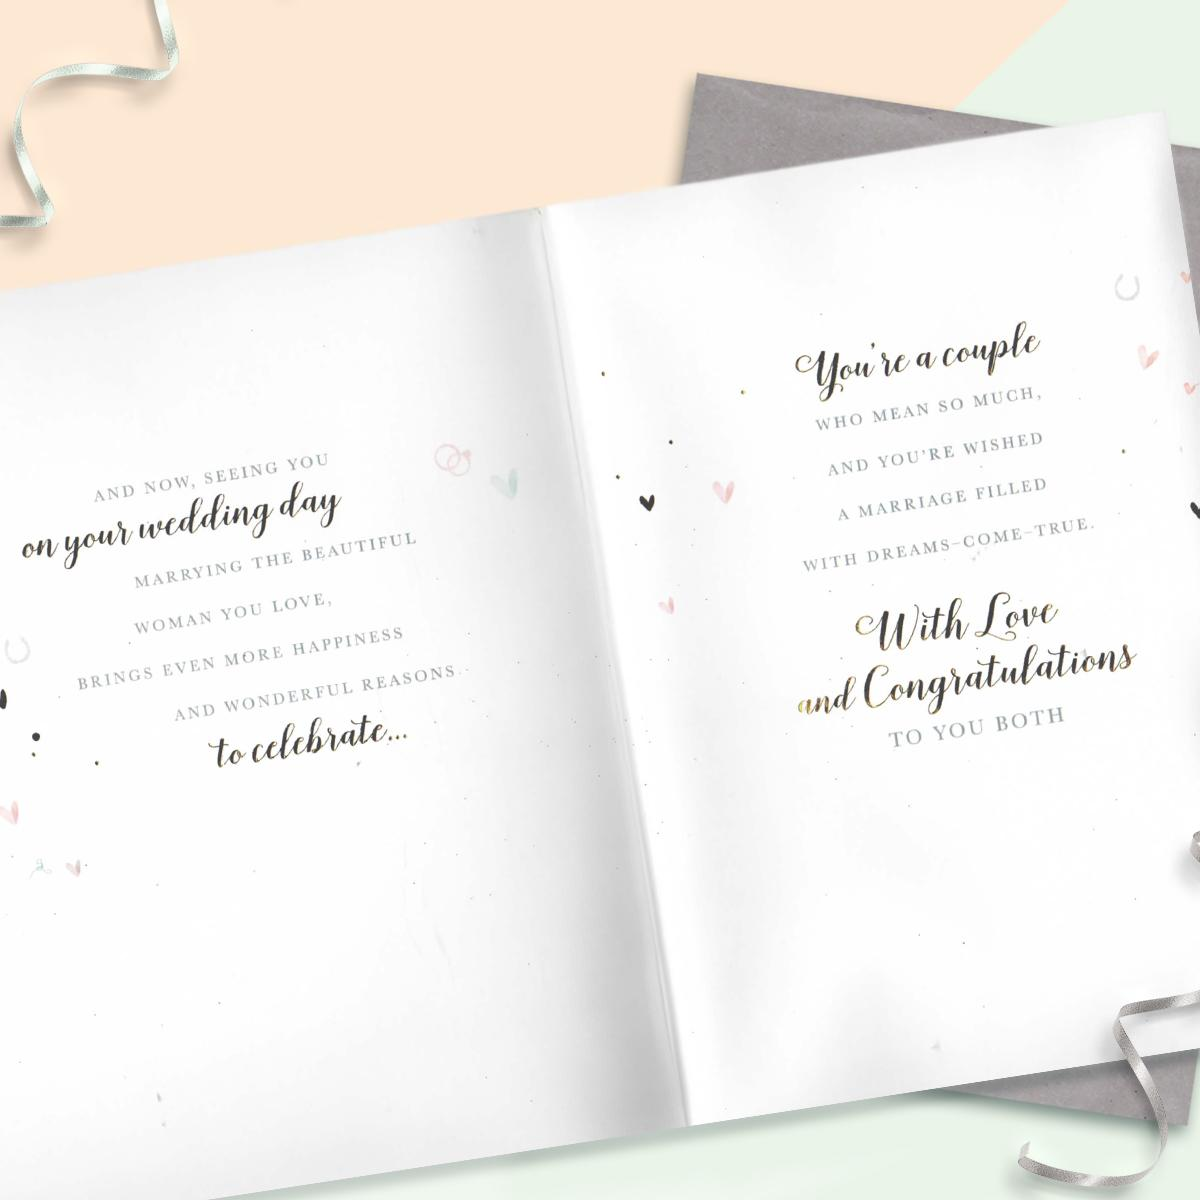 Inside Of Grandson Wedding Card Showing Layout And Printed Text